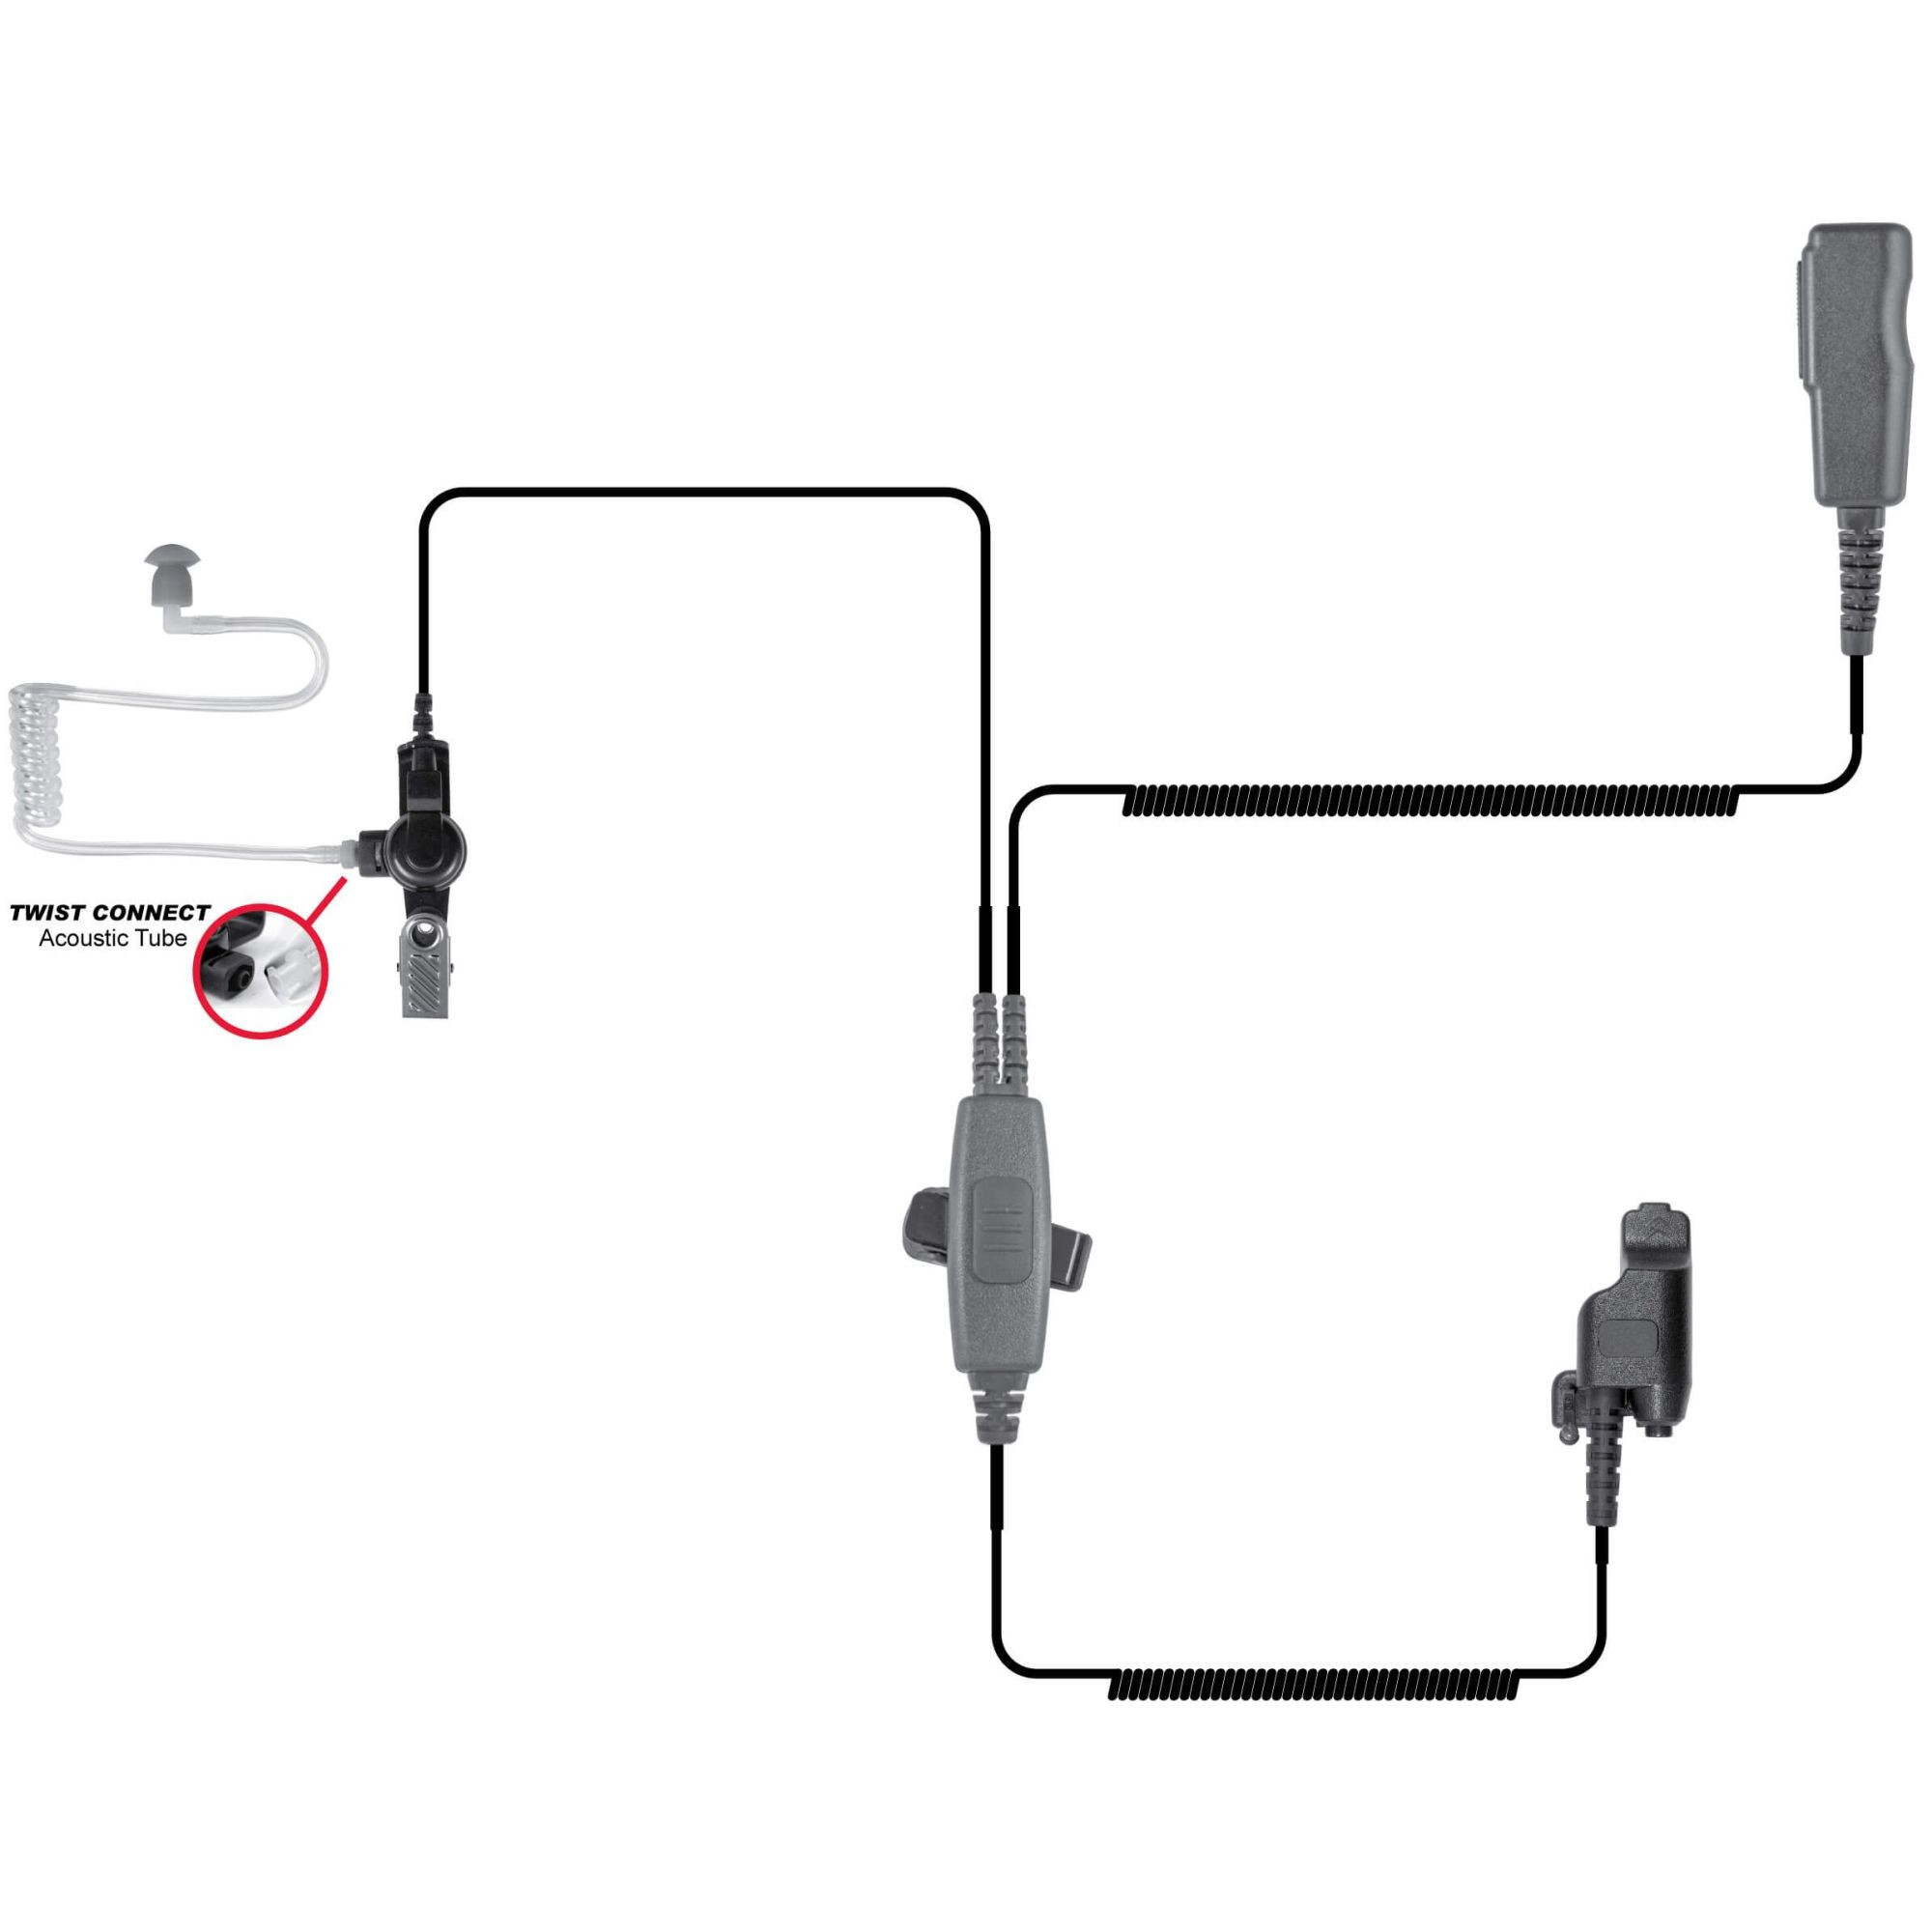 hight resolution of spm 2022sqd 2 wire surveillance style lapel microphone